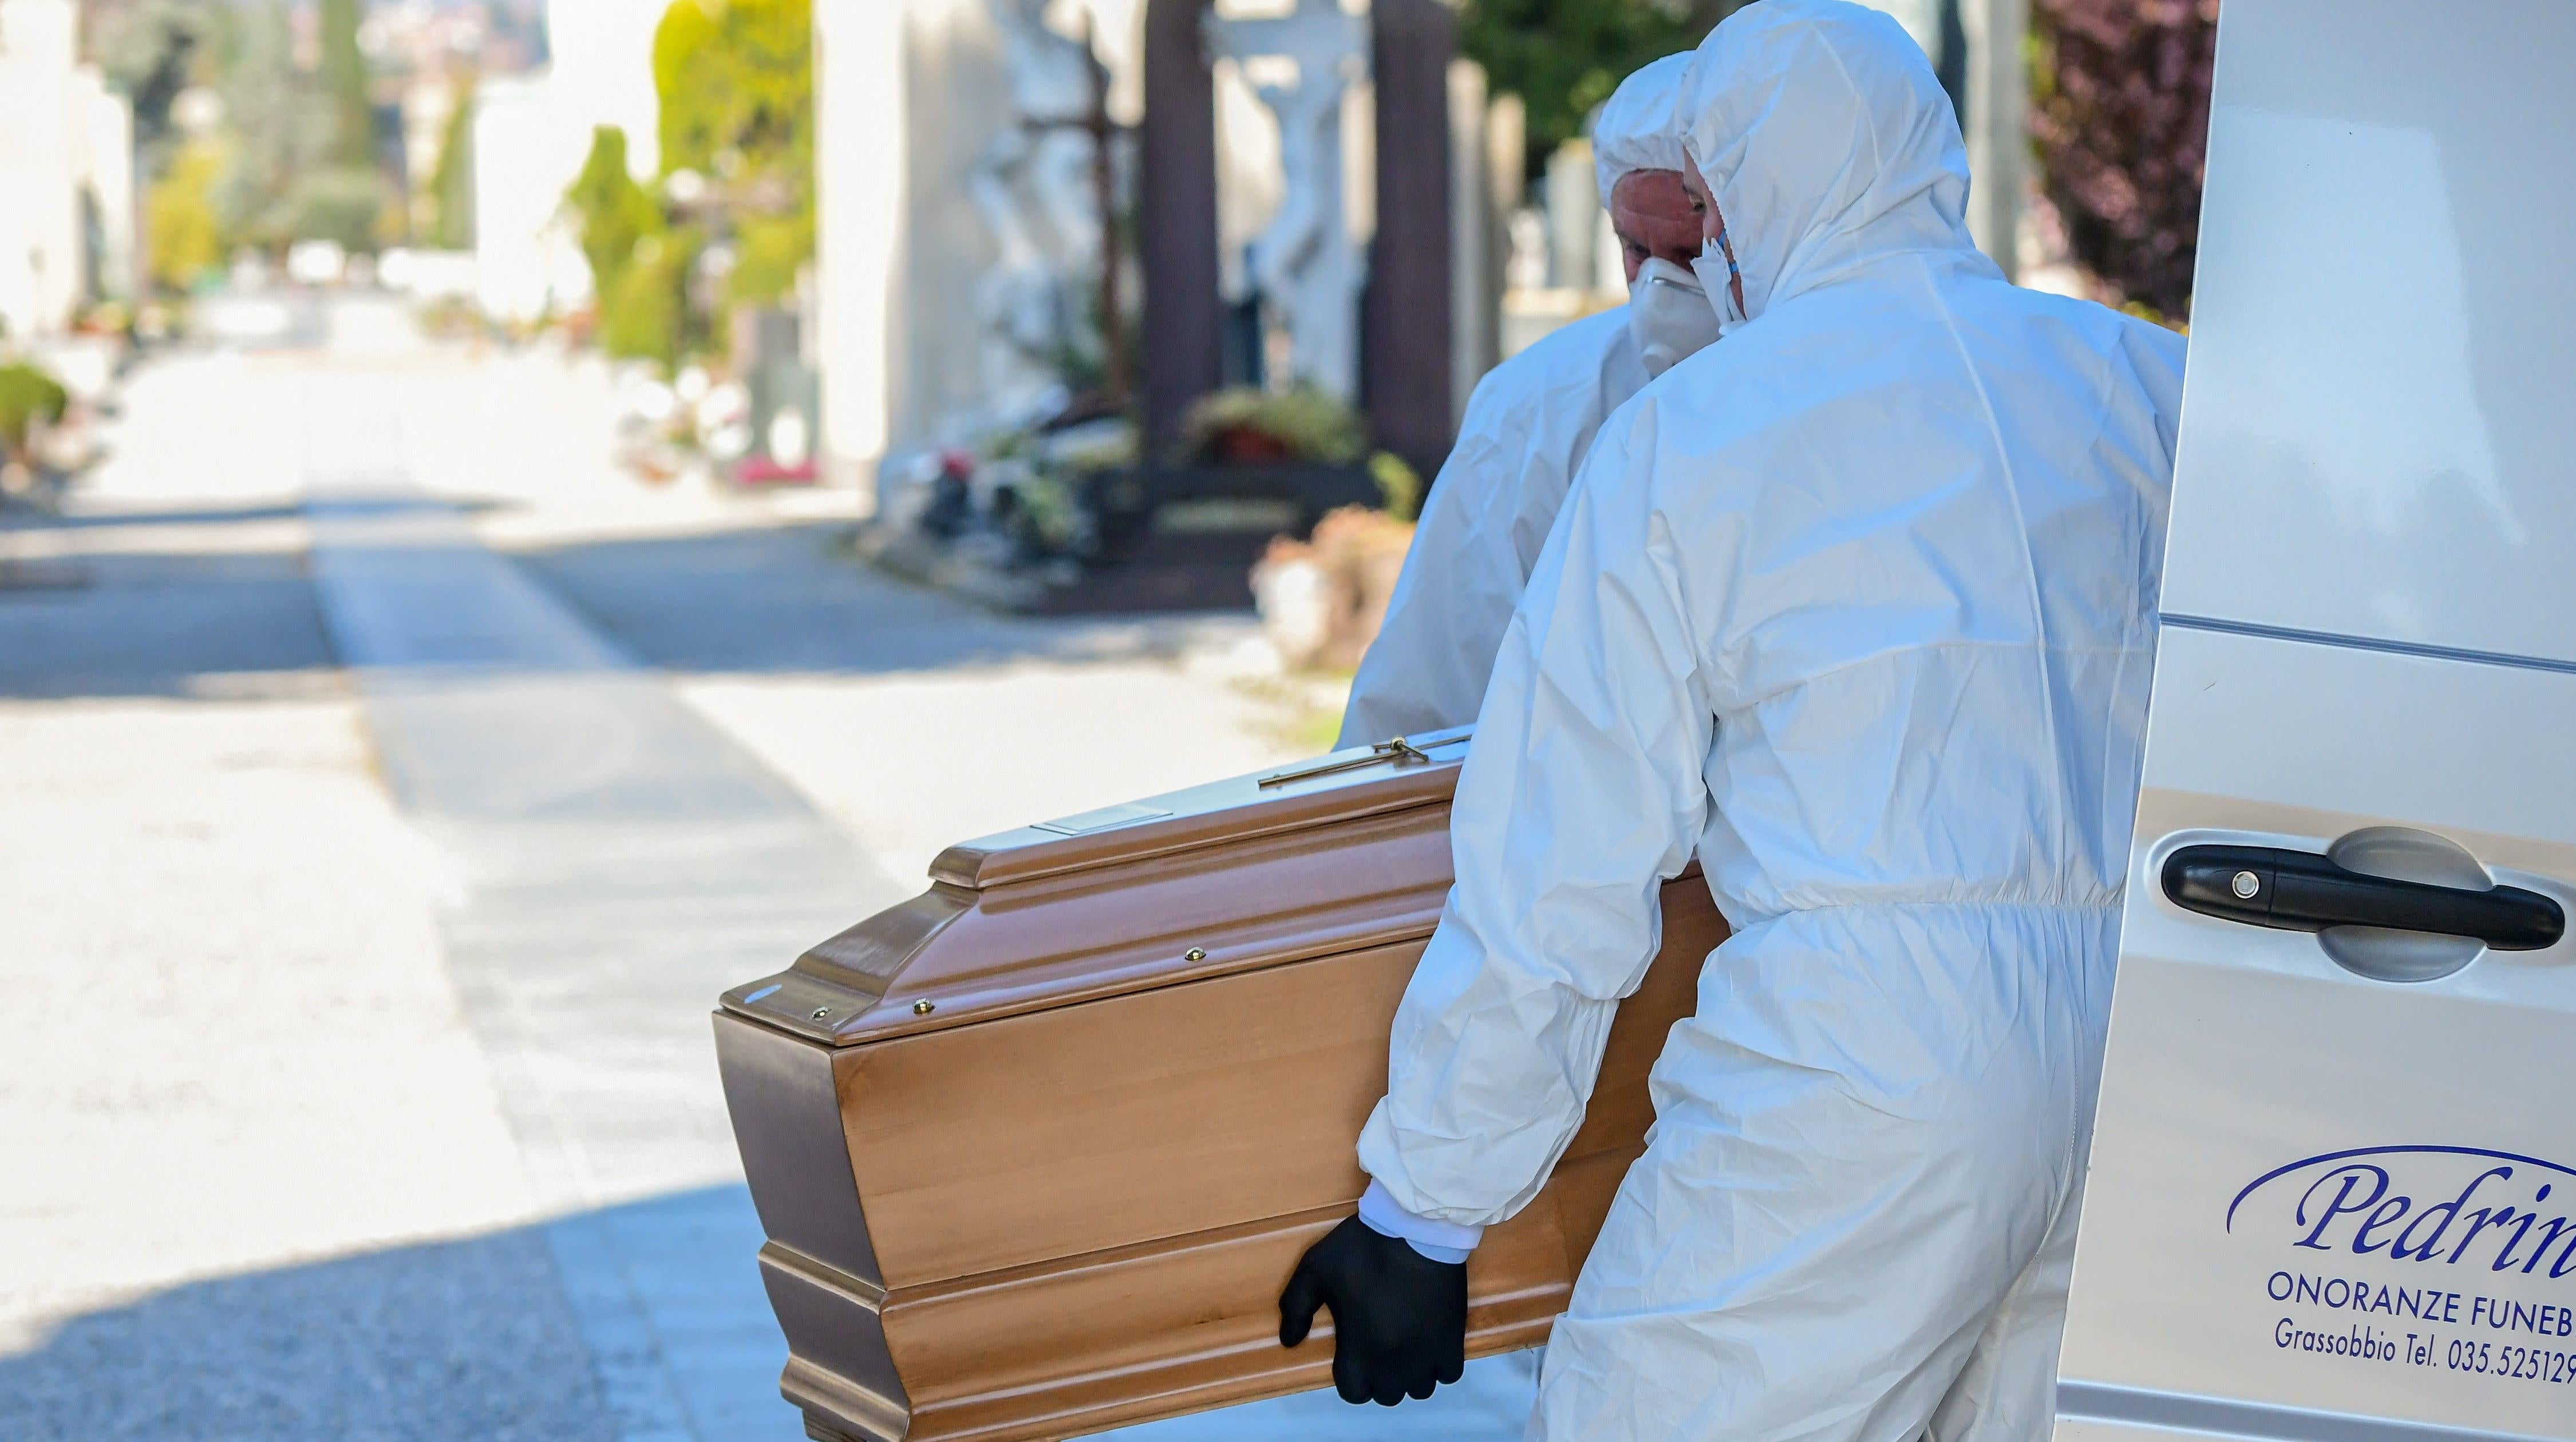 U.S. Health Authority Advises Morticians That It Is Time To Switch To Livestreaming Funerals